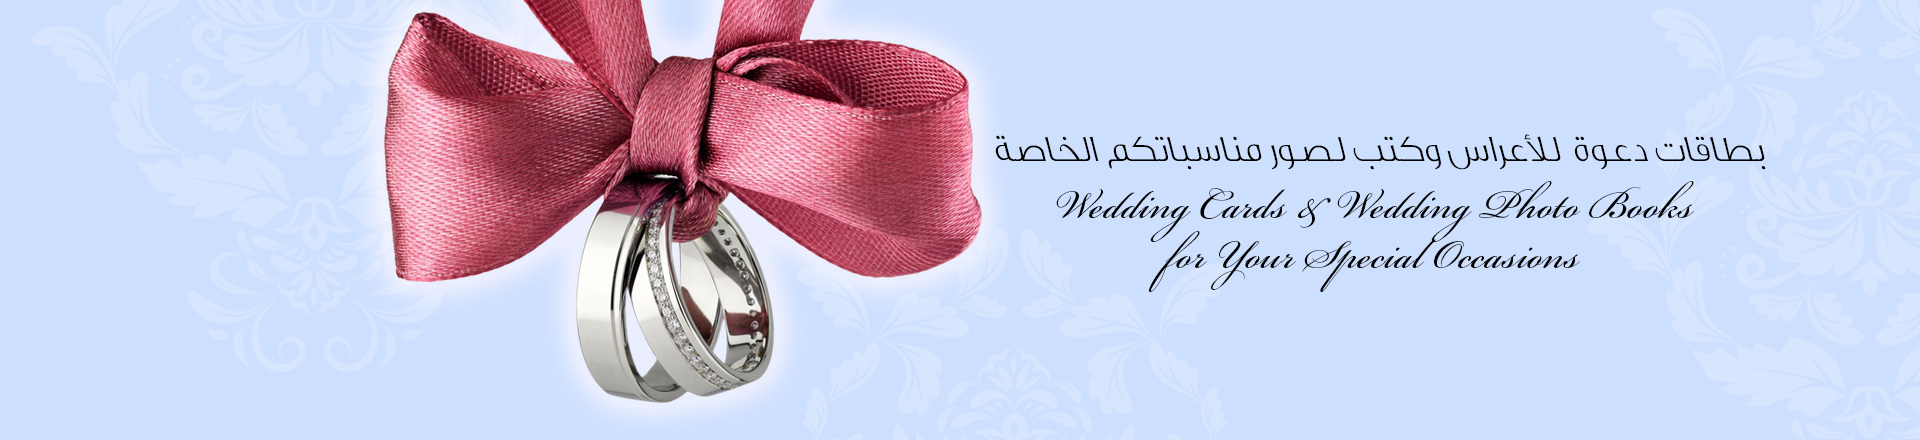 Wedding Cards and Photo Albums for your special occasions. Beirut - Lebanon